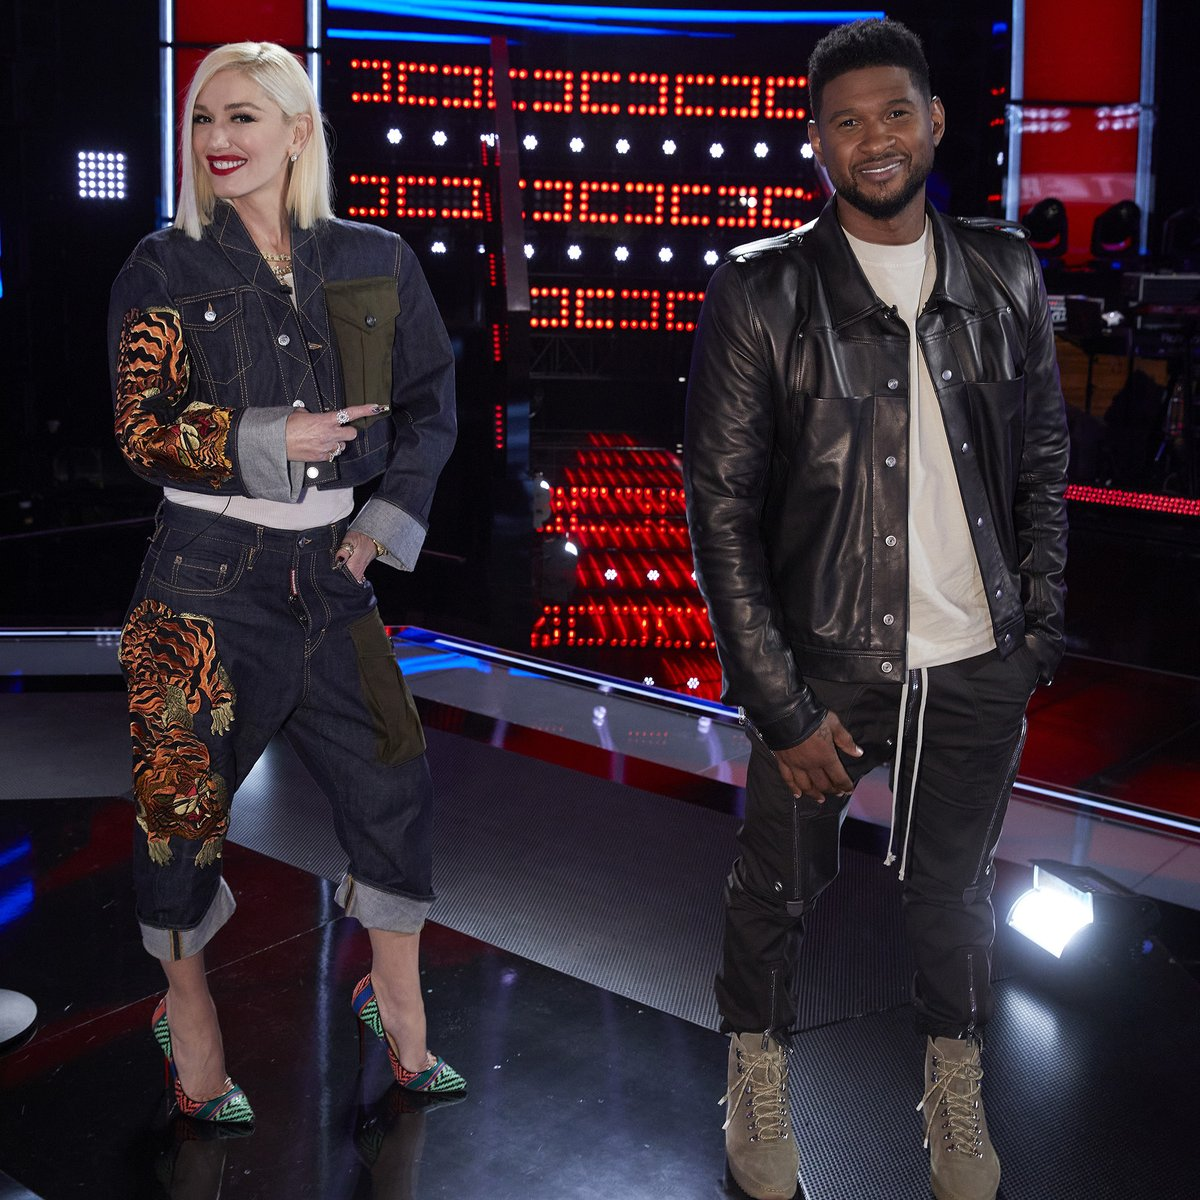 Replying to @NBCTheVoice: How do we get @Usher and @GwenStefani to be our dance partners? 🕺